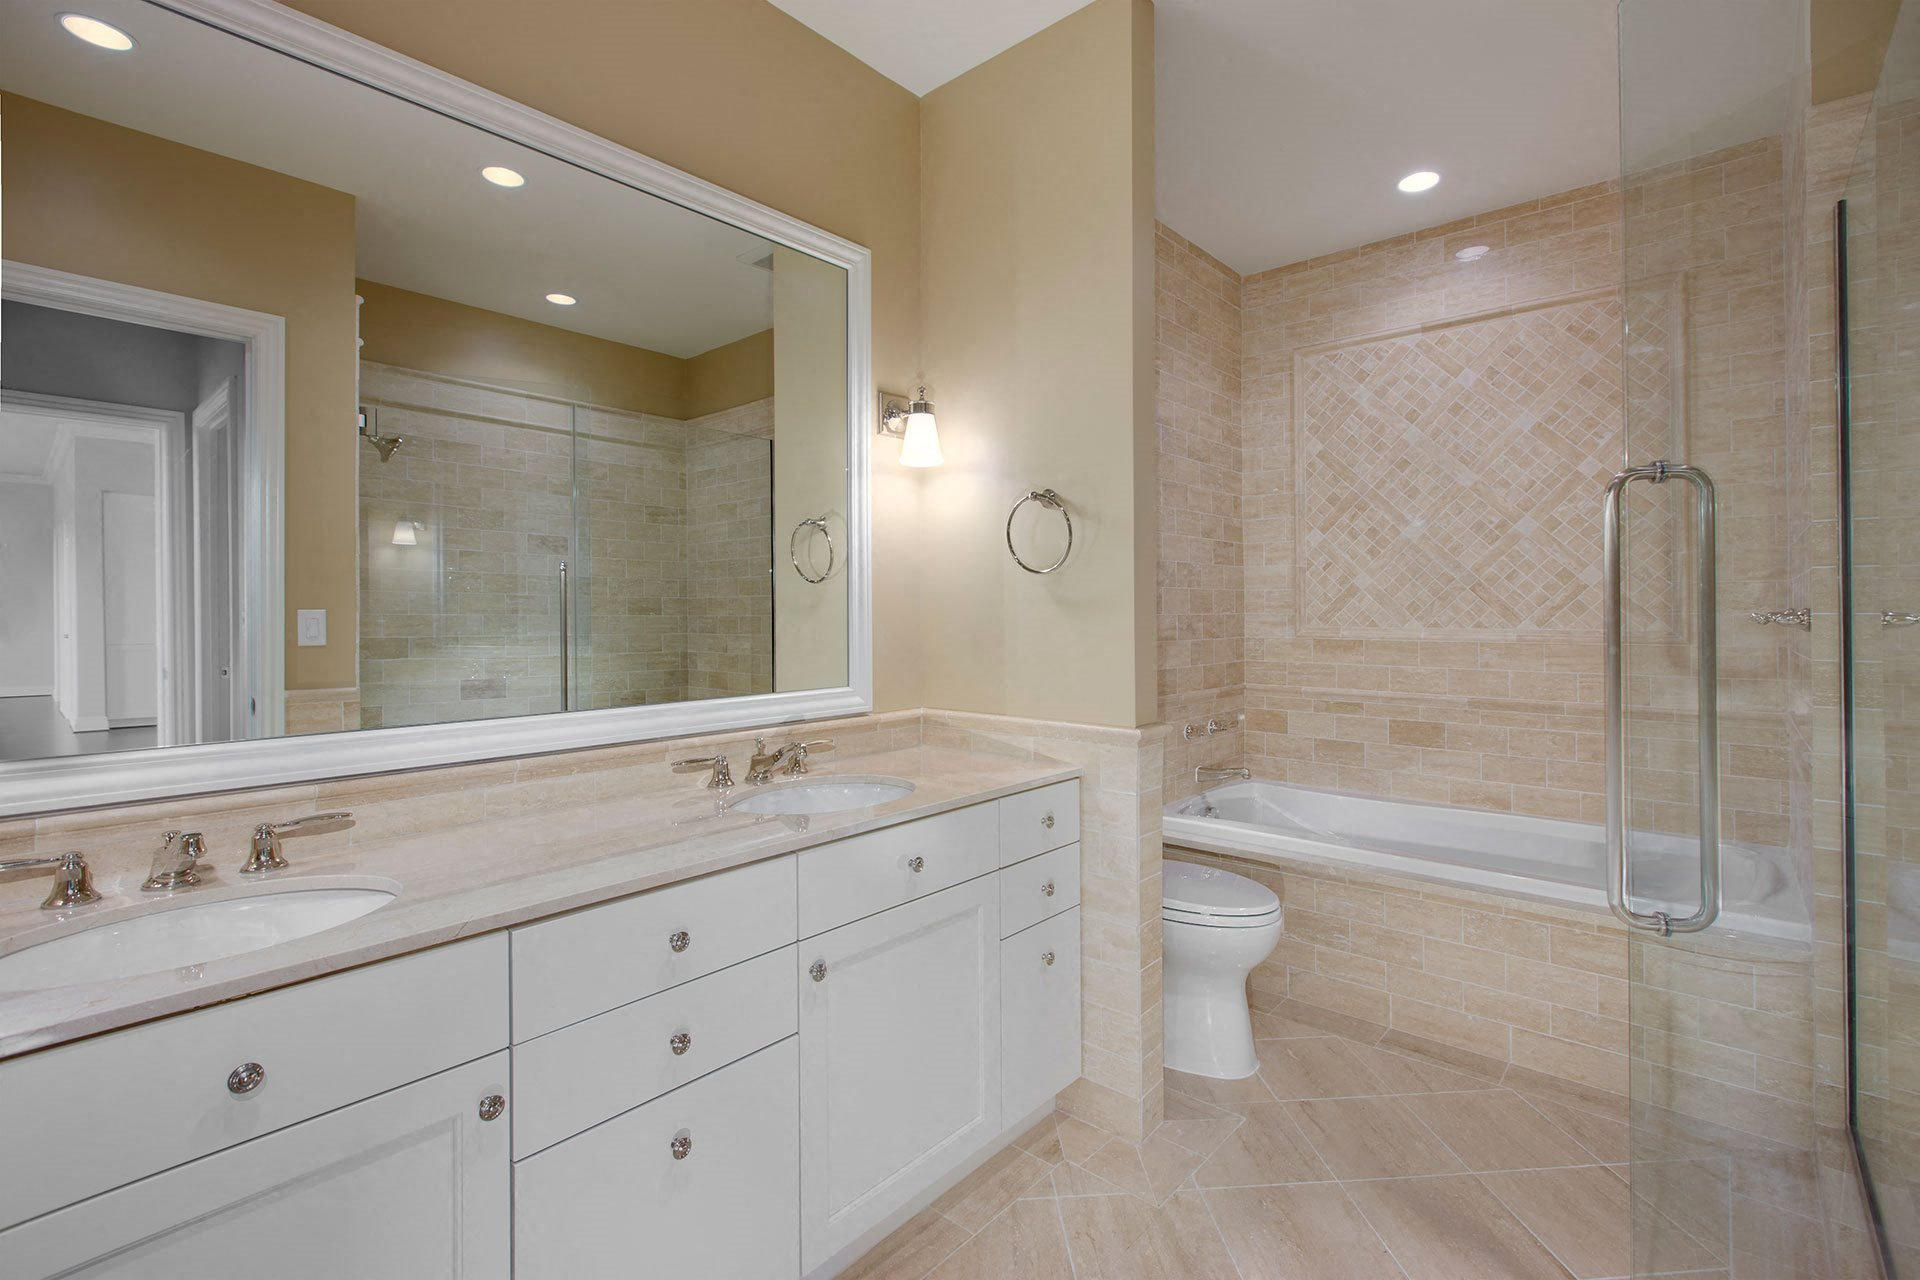 Bathroom With Extra Storage Space at The Woodley, Washington, DC